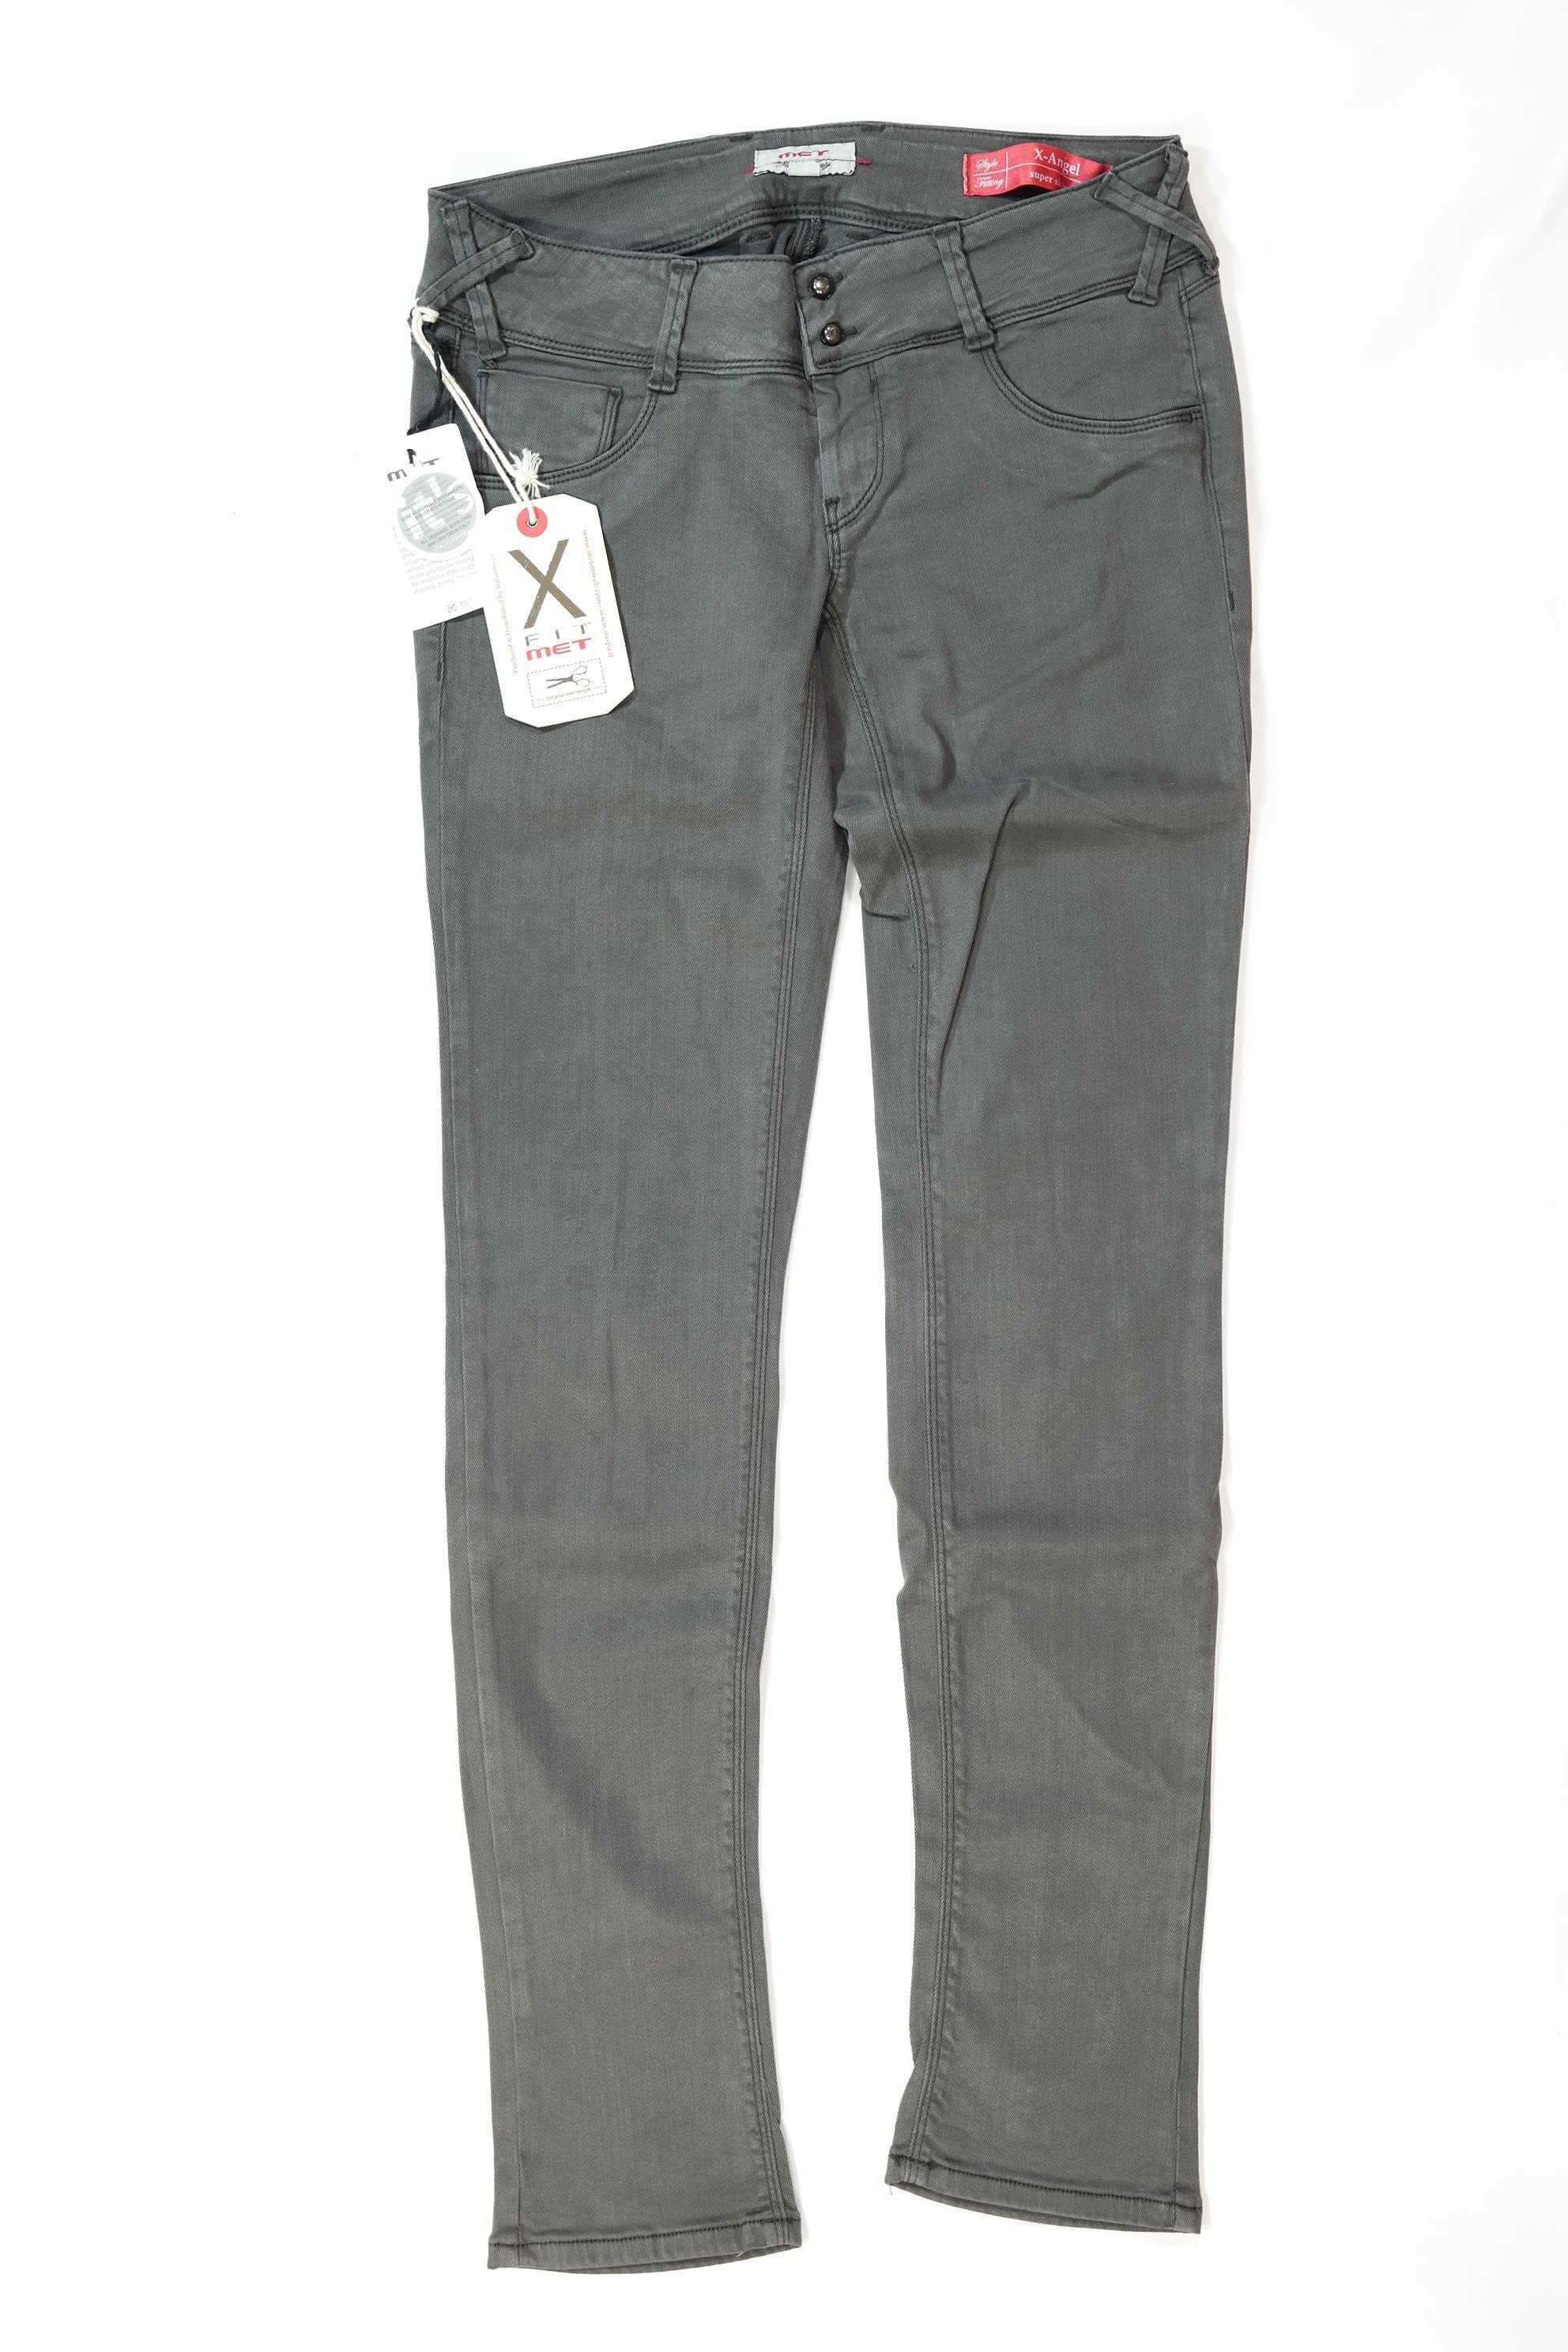 Met Tg Pantalone angel Italy Donna Nuovo X Made Super 32 Skinny In 16ai26 Mod gqnr5Bf0q